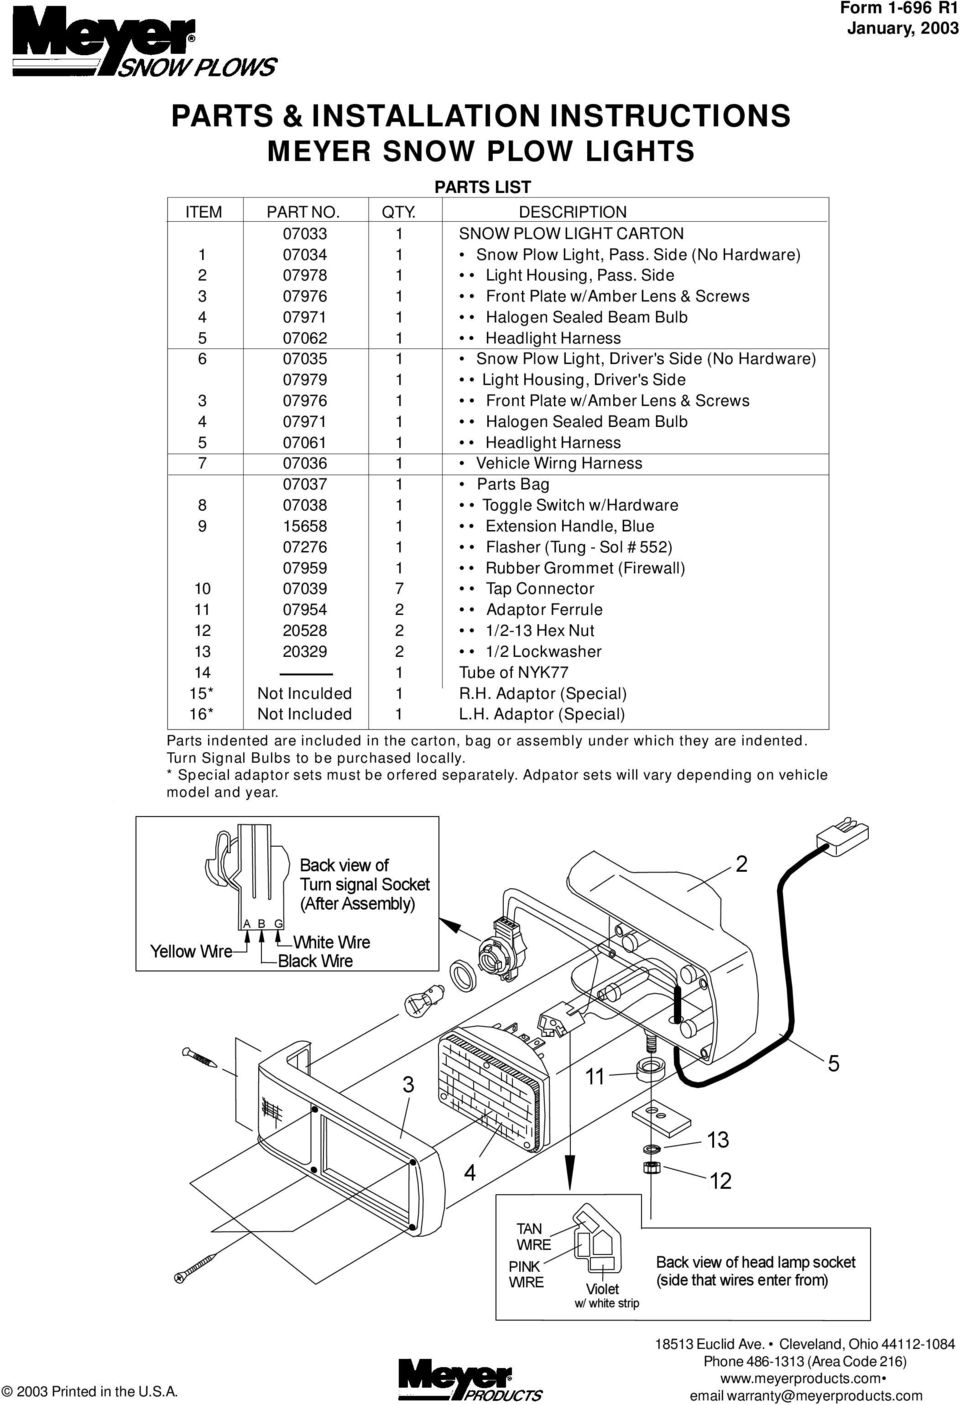 Parts Installation Instructions Meyer Snow Plow Lights Pdf H6545 Headlight Wiring Diagram Side 3 07976 1 Front Plate W Amber Lens Screws 4 07971 Halogen